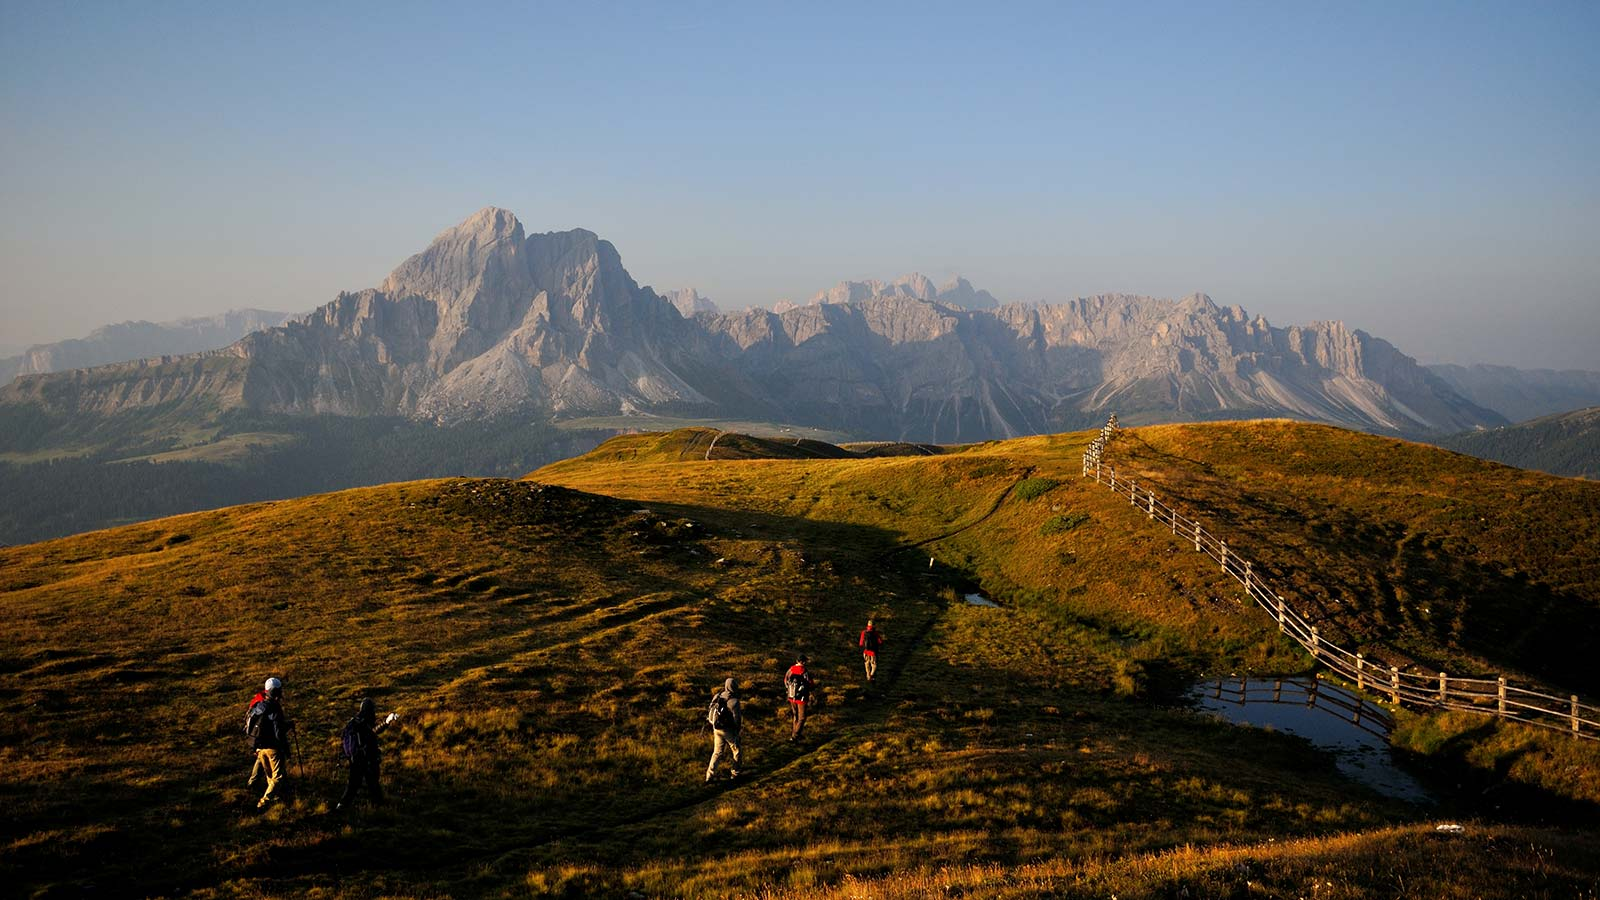 Hikers at twilight in the Natural Park Puez-Odle with Monte Muro on the background